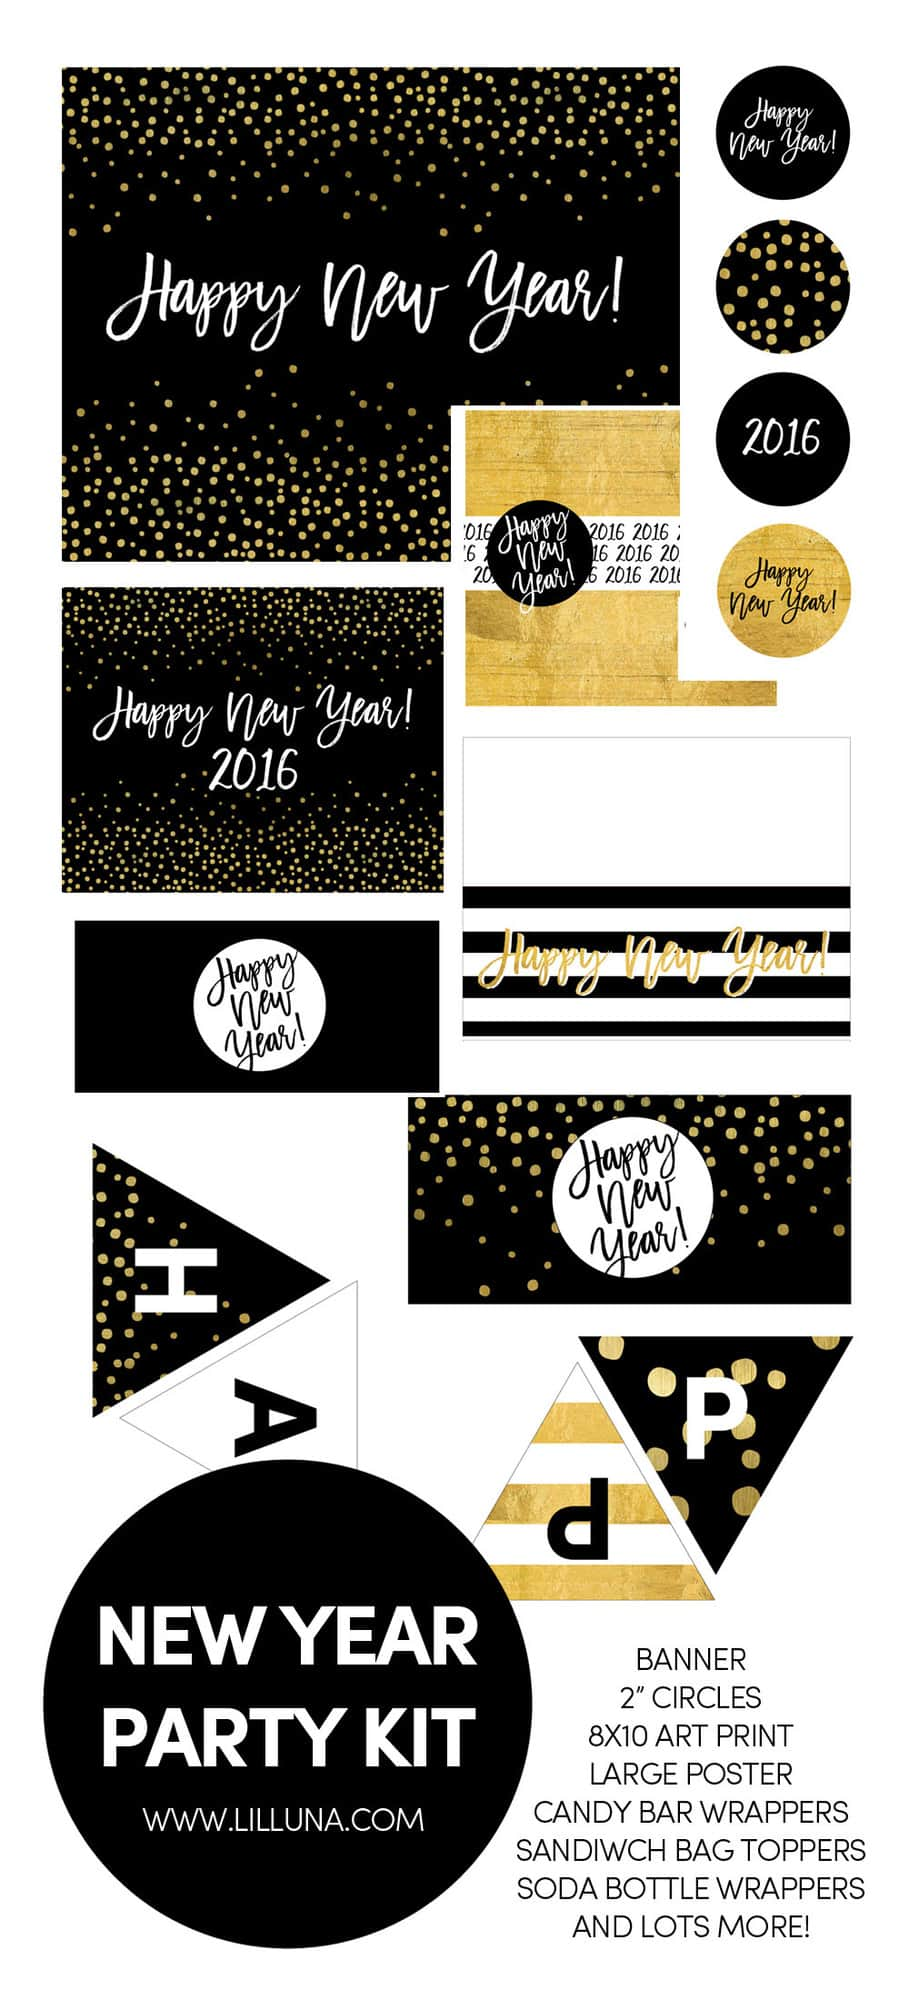 New Year Party Kit-FREE prints!! All the prints you need for your special night!